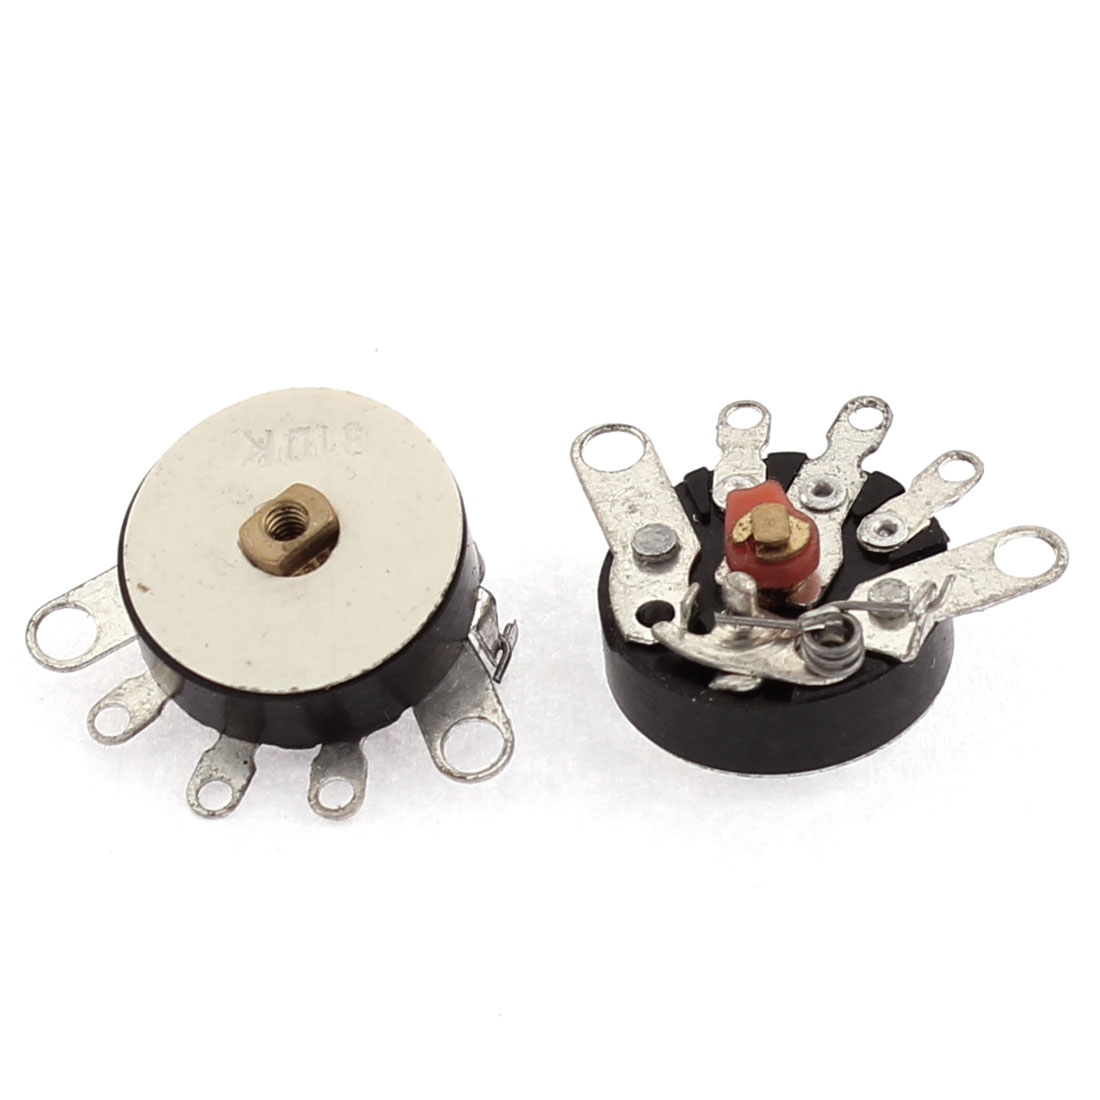 Original Thumbwheel B Type 10k Splitshaft Volume Potentiometer 2pcs